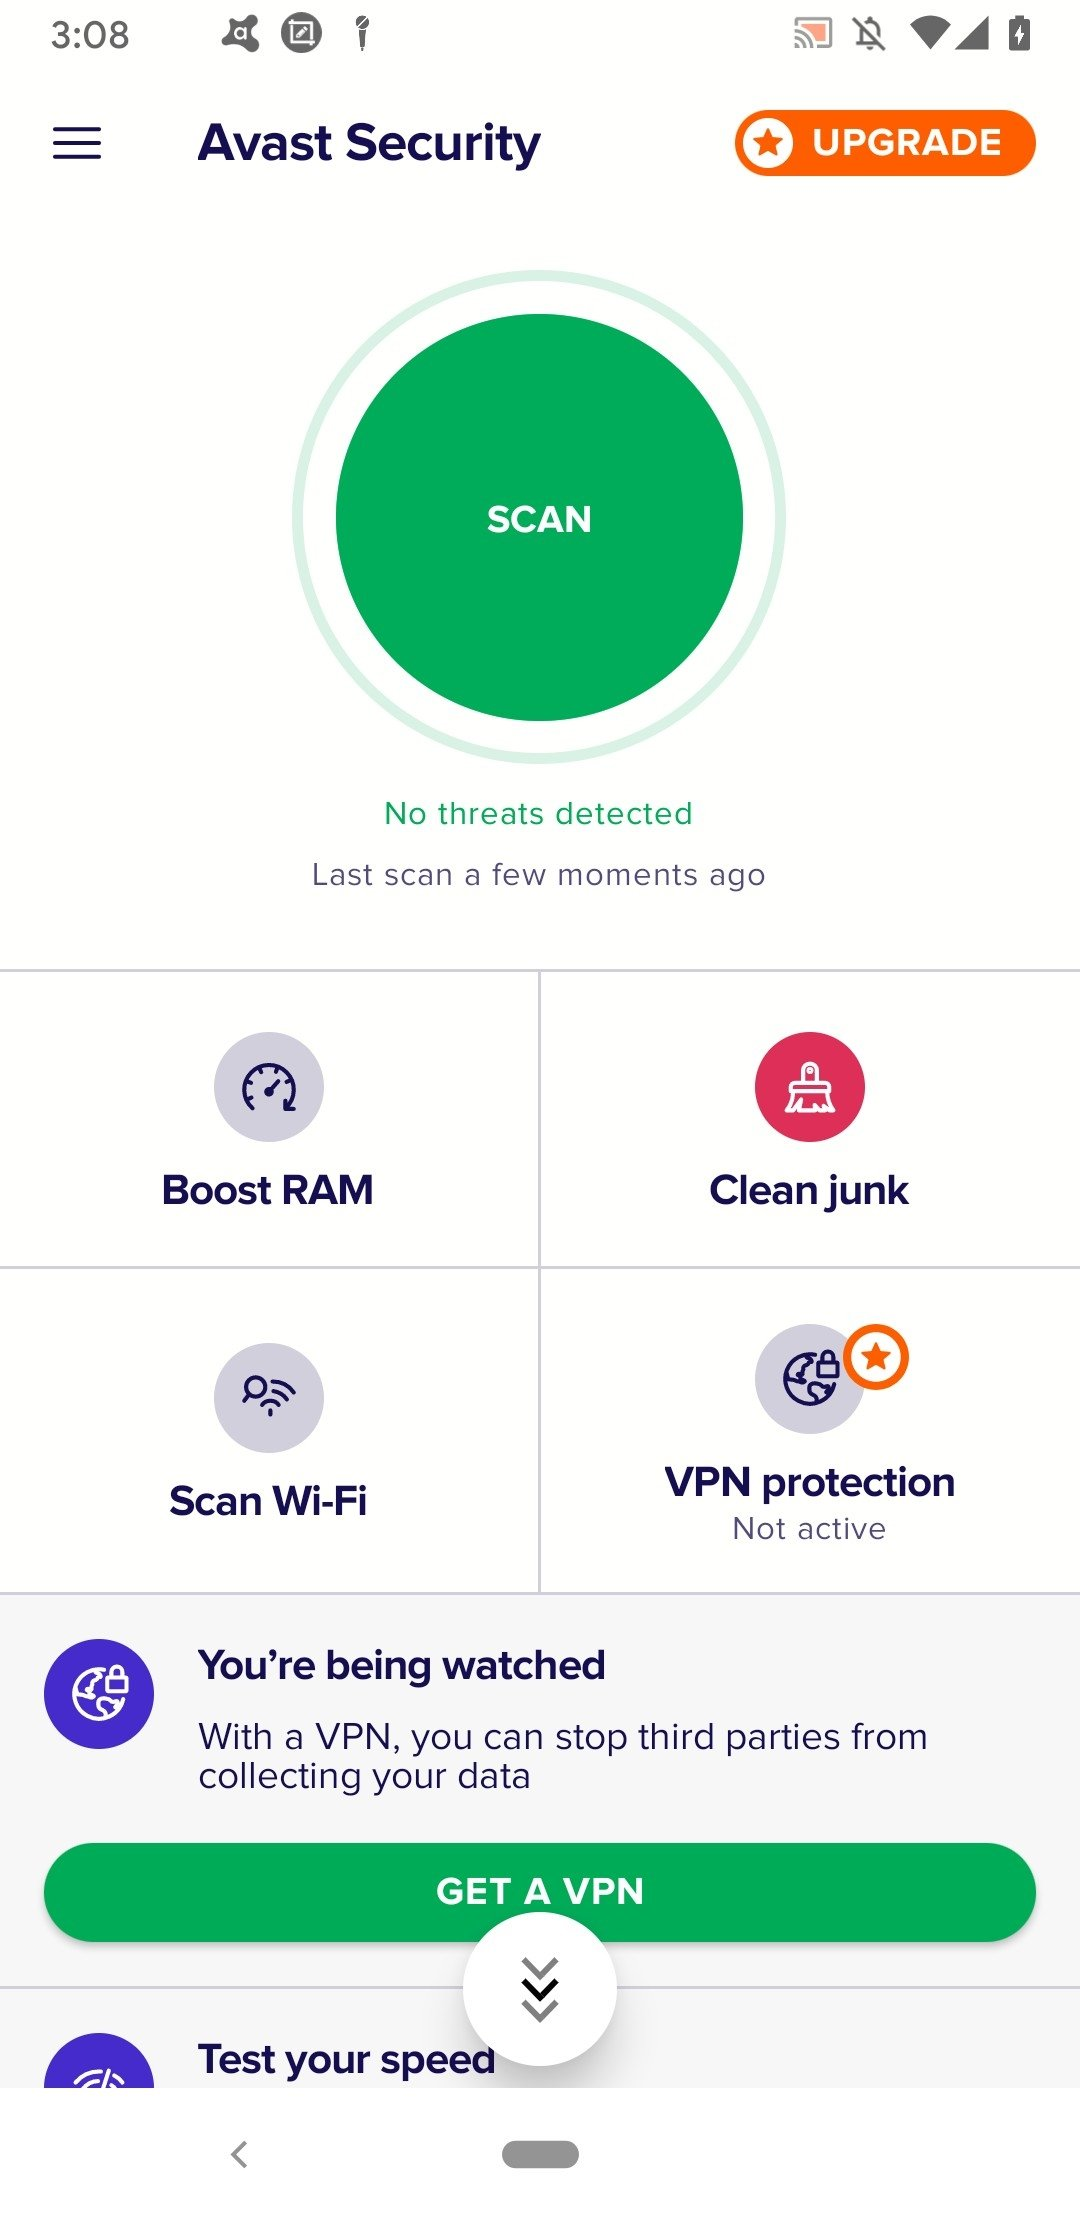 Avast Mobile Security & Antivirus Android image 5